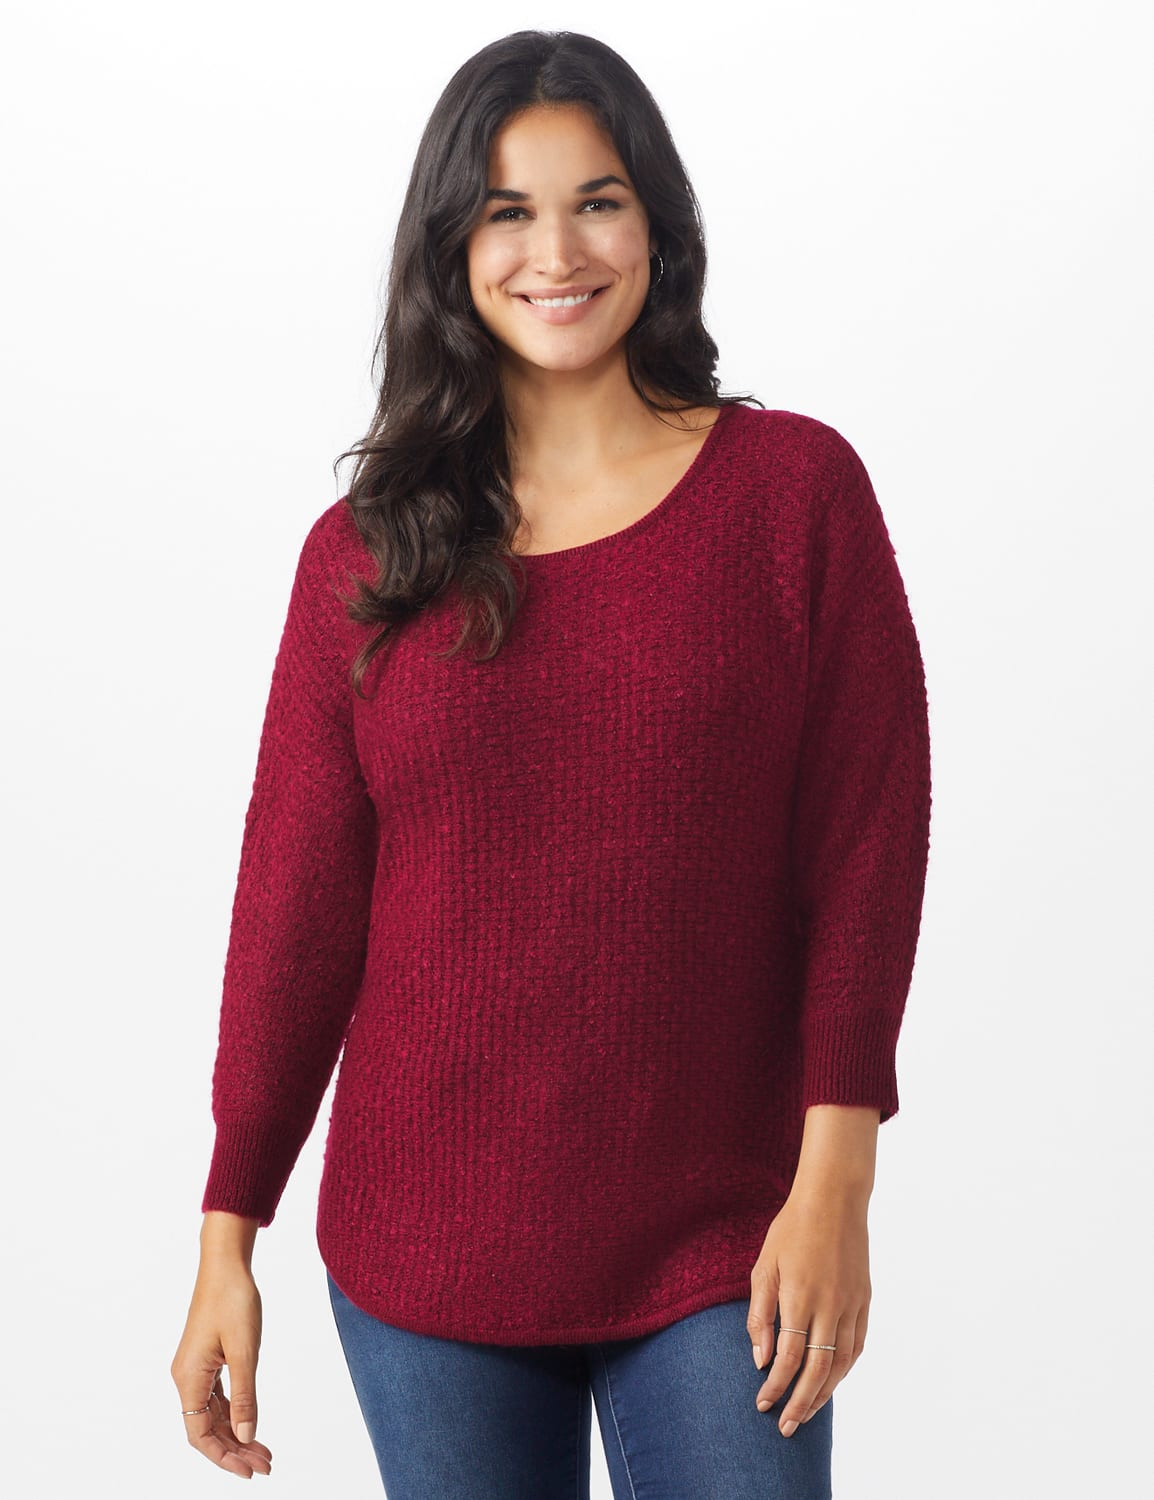 Westport Basketweave Stitch Curved Hem Sweater - Misses - Red - Front